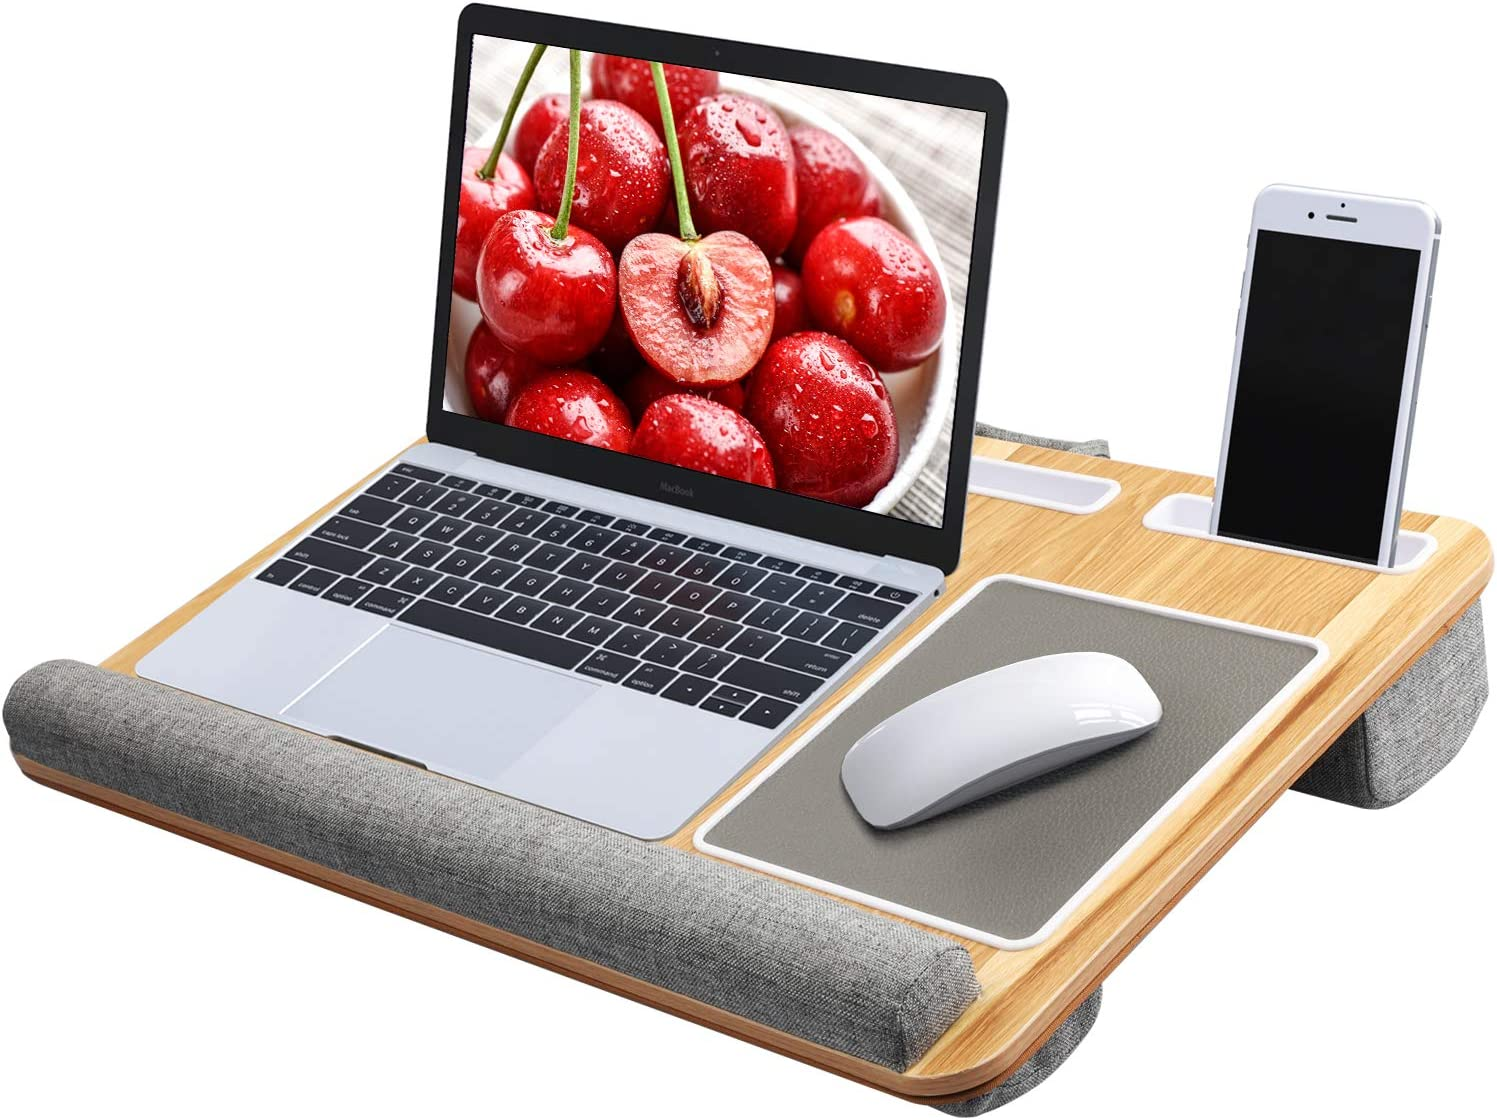 Lap Desk - Fits up to 17 inches Laptop Desk, Built in Mouse Pad & Wrist Pad for Notebook, MacBook, Tablet, Laptop Stand with Tablet, Pen & Phone Holder (Wood Grain) : Office Products